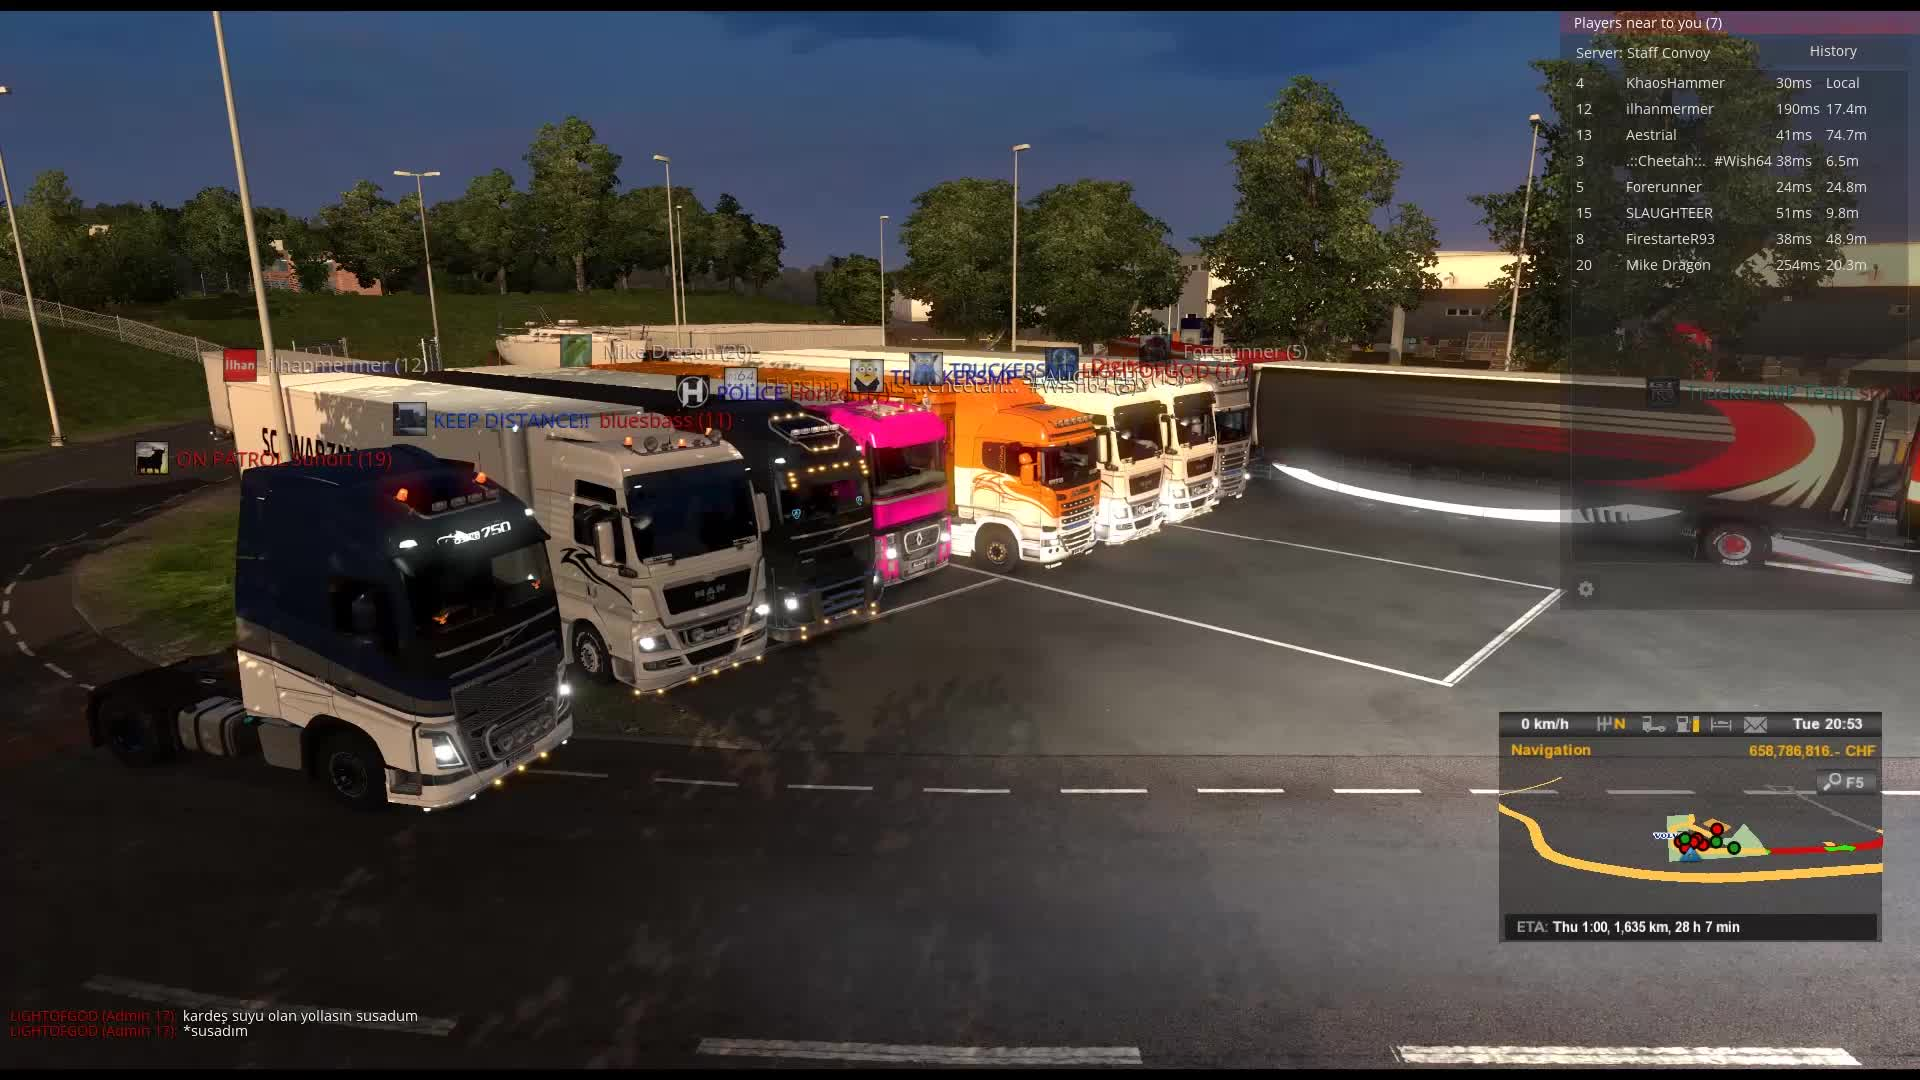 TruckersMP - How to end a Staff Convoy by Louie G. GIFs